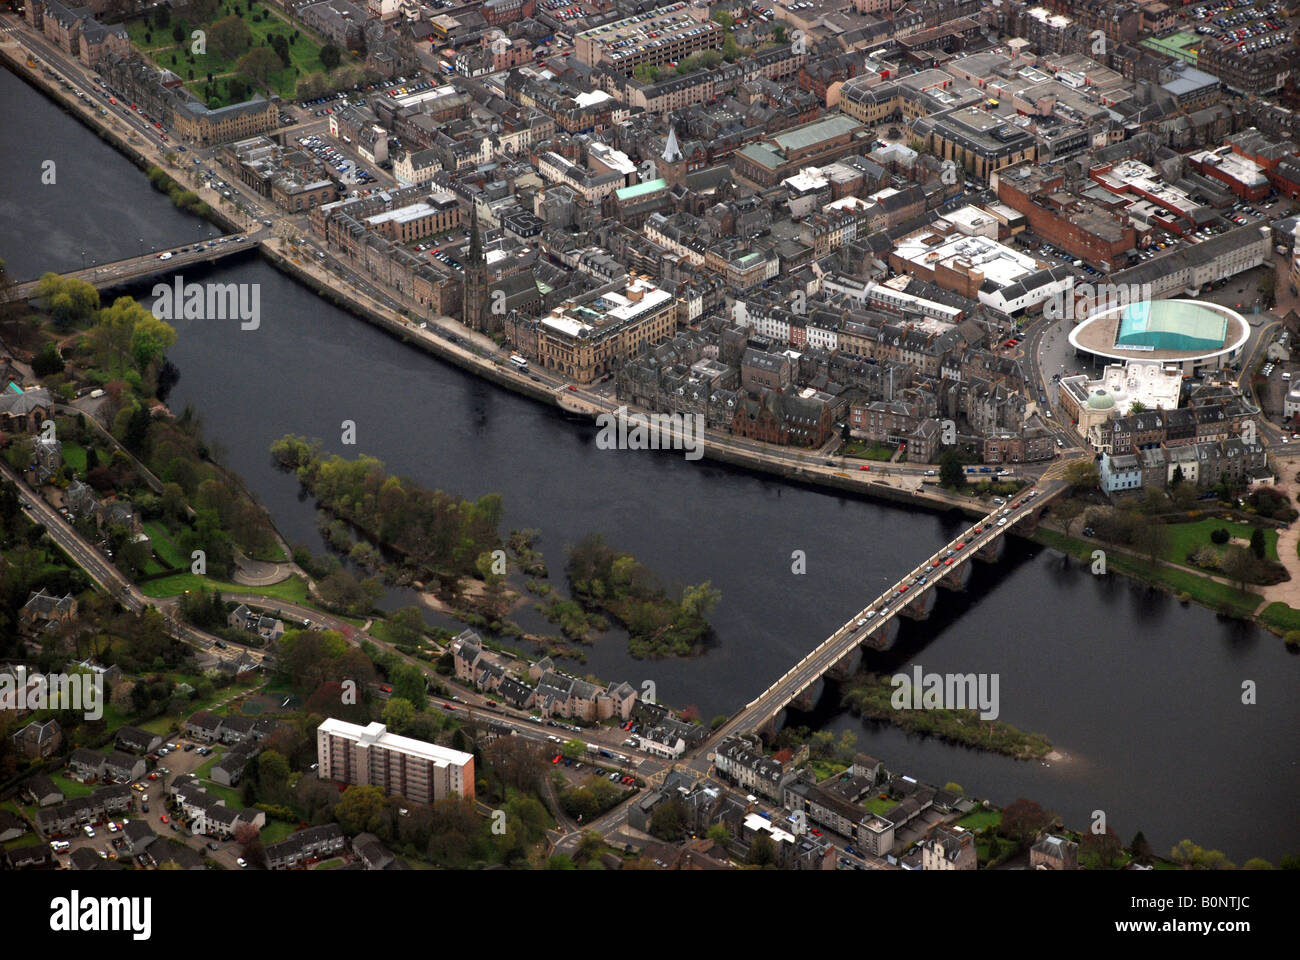 Aerial view of the River Tay and Perth City Centre - Stock Image